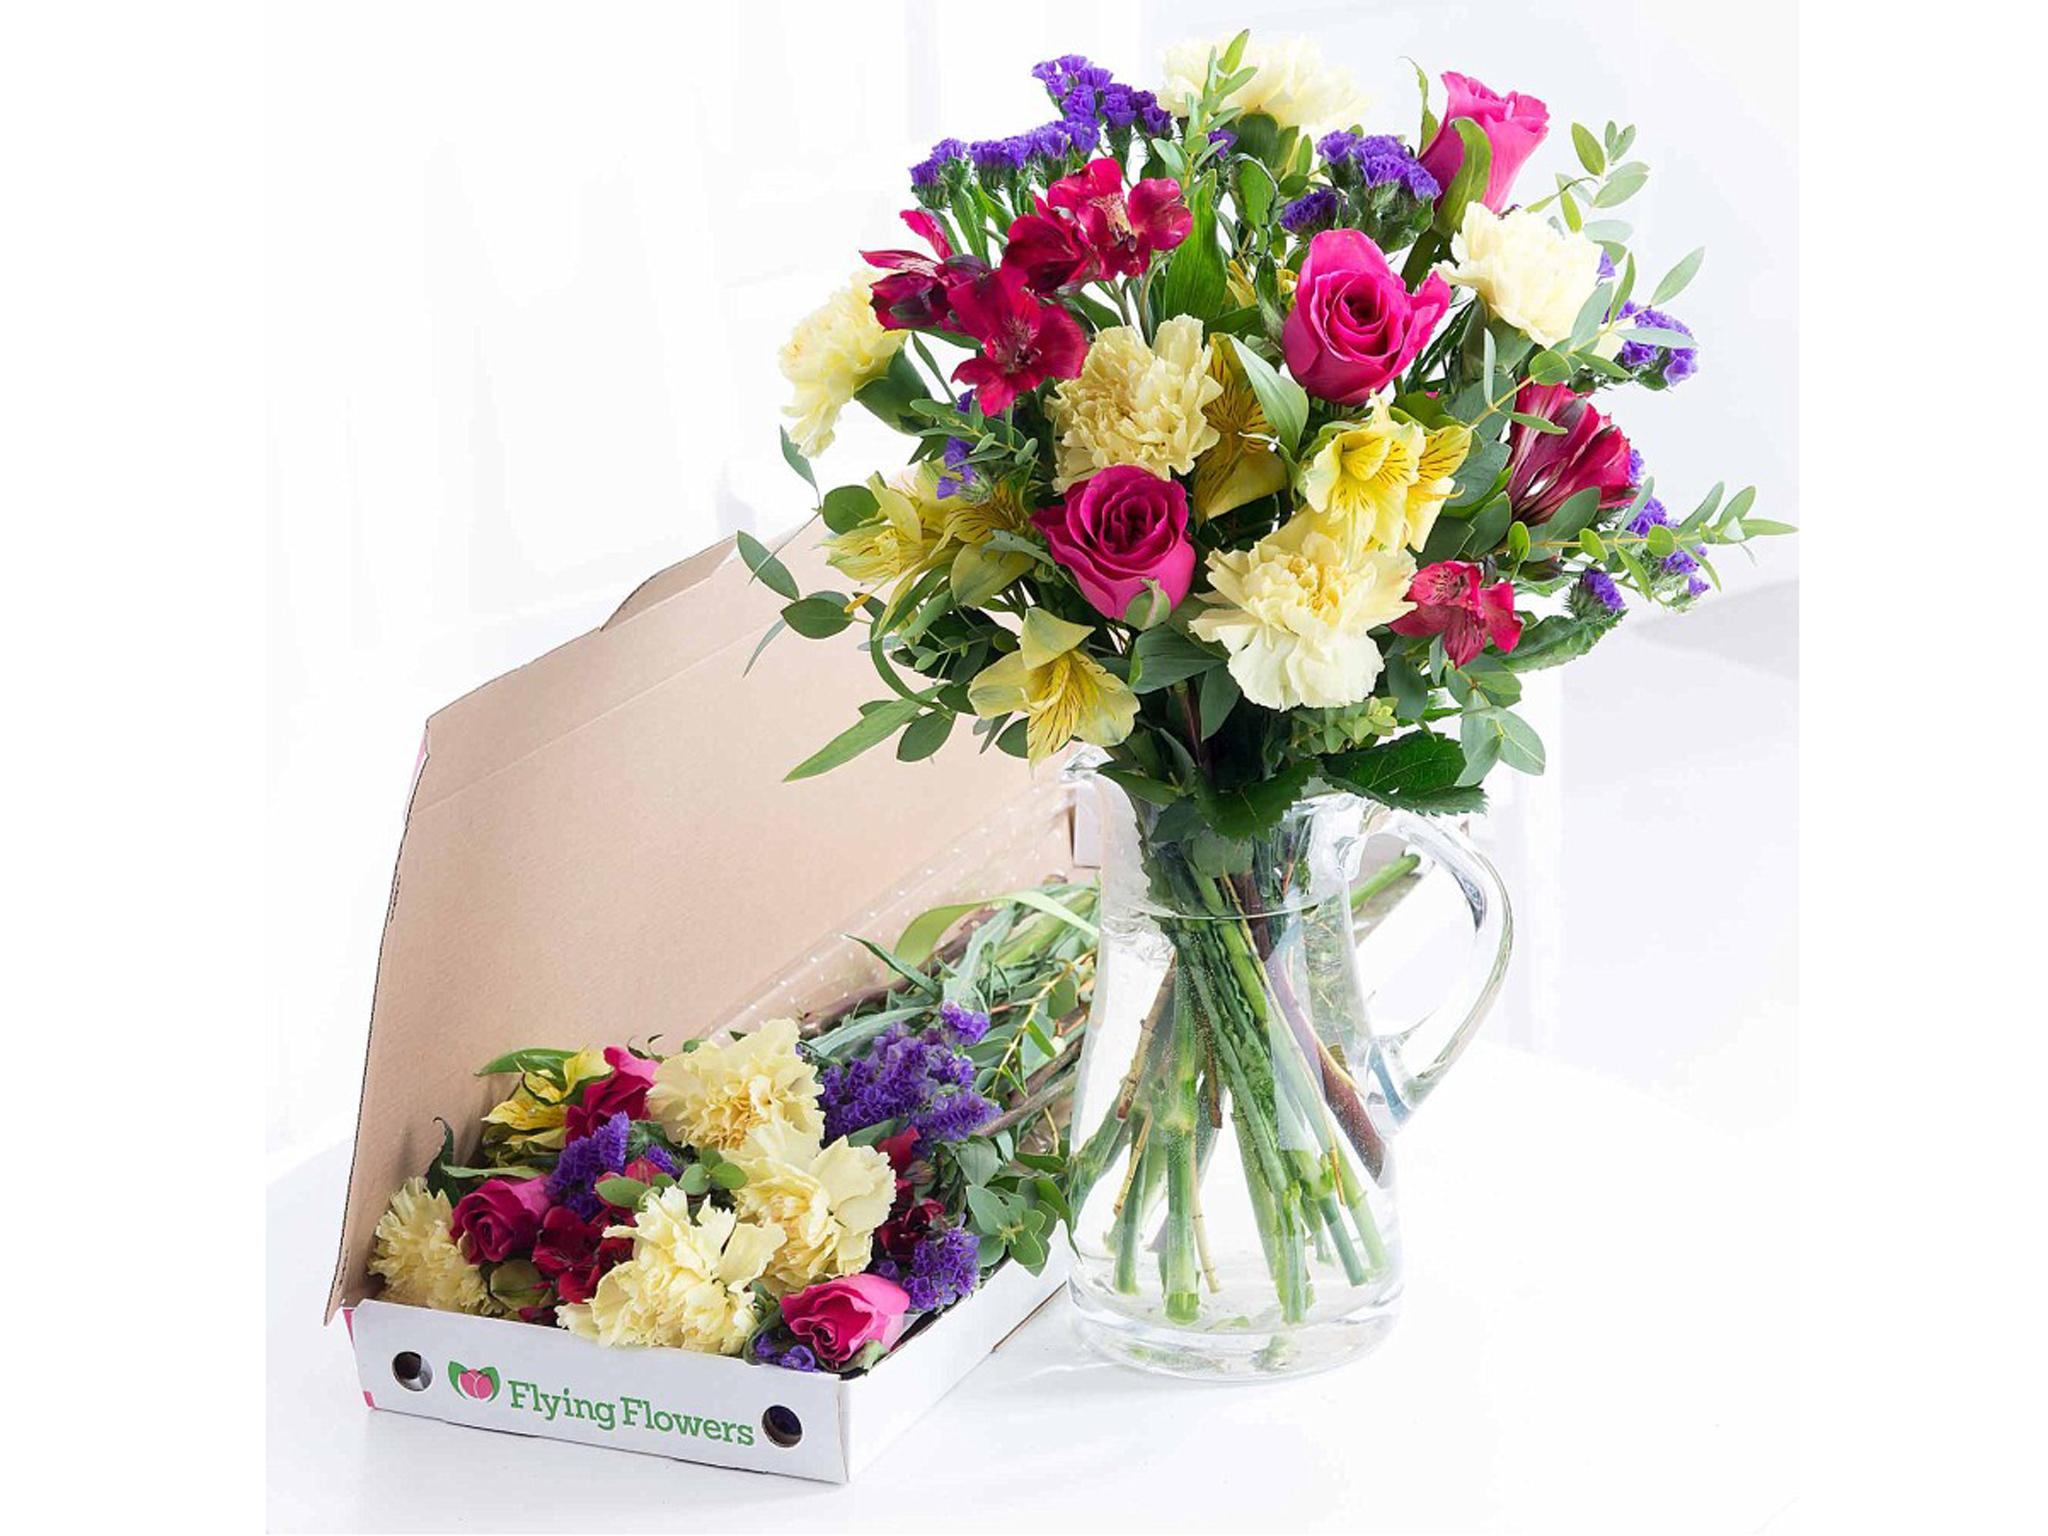 8 best letterbox flowers the independent flying flowers radiant jewels 2299 flying flowers izmirmasajfo